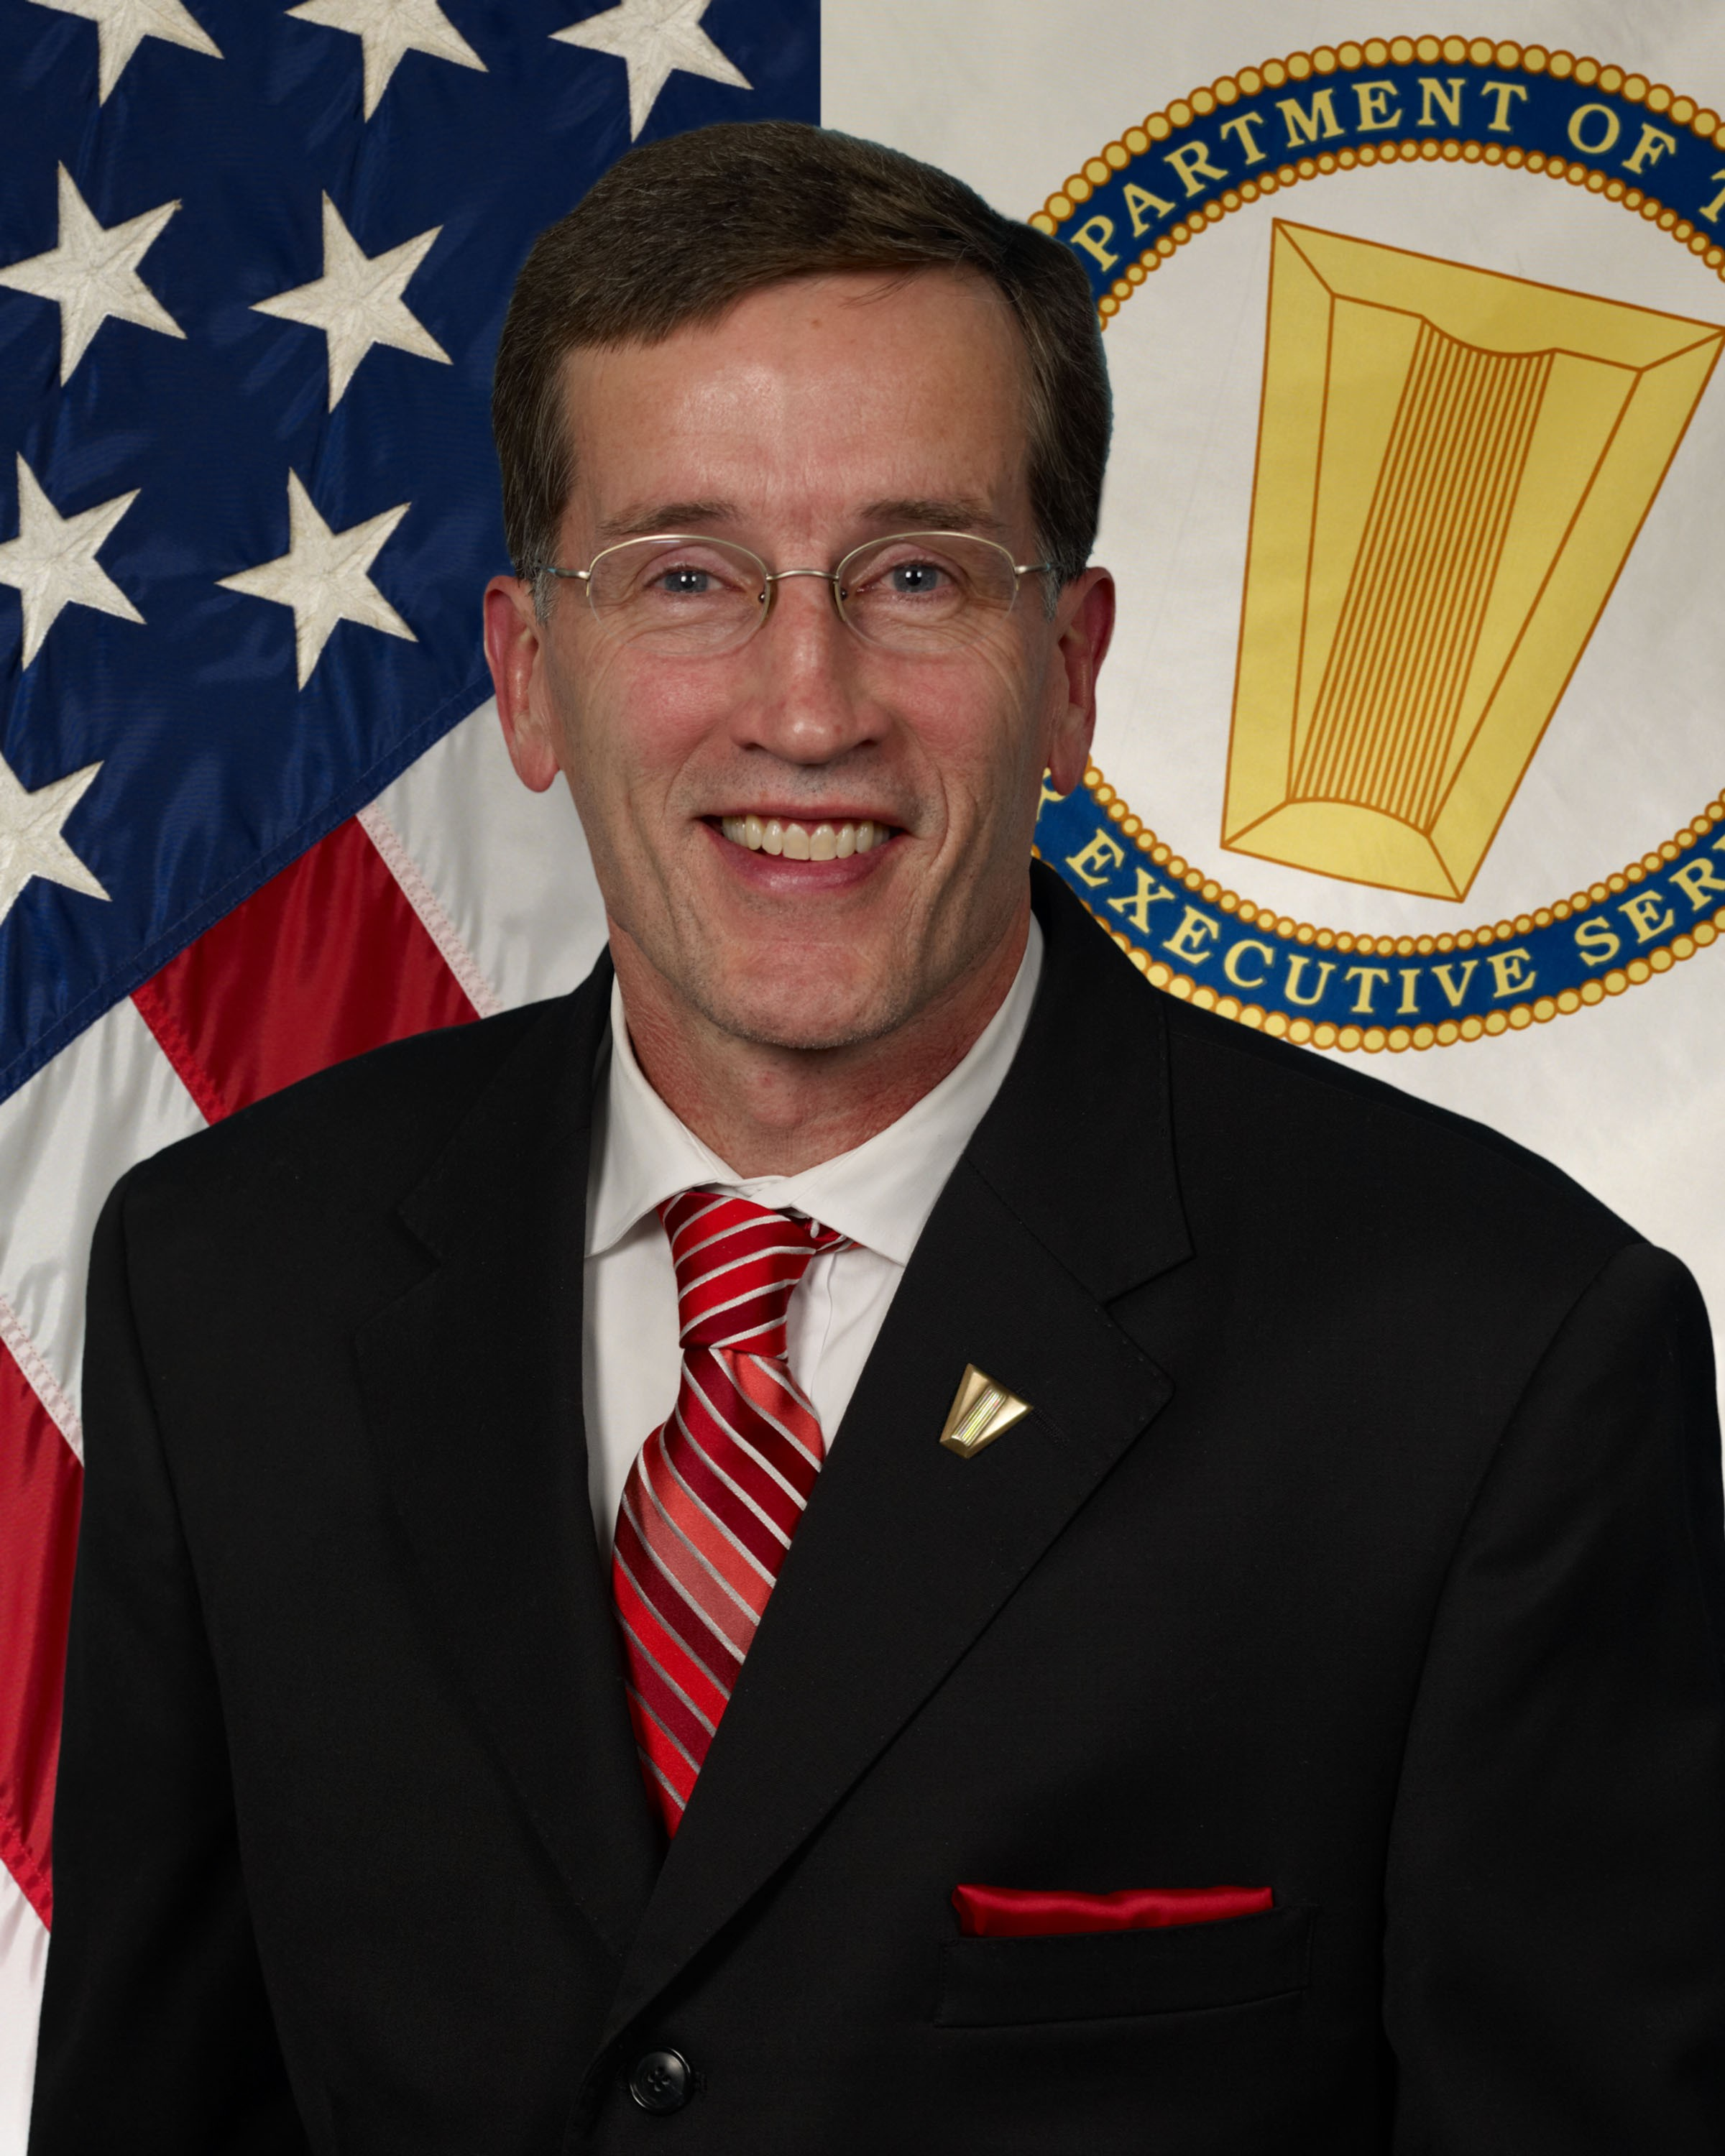 Army selects amc chief technology officer to serve as - Chief information technology officer ...